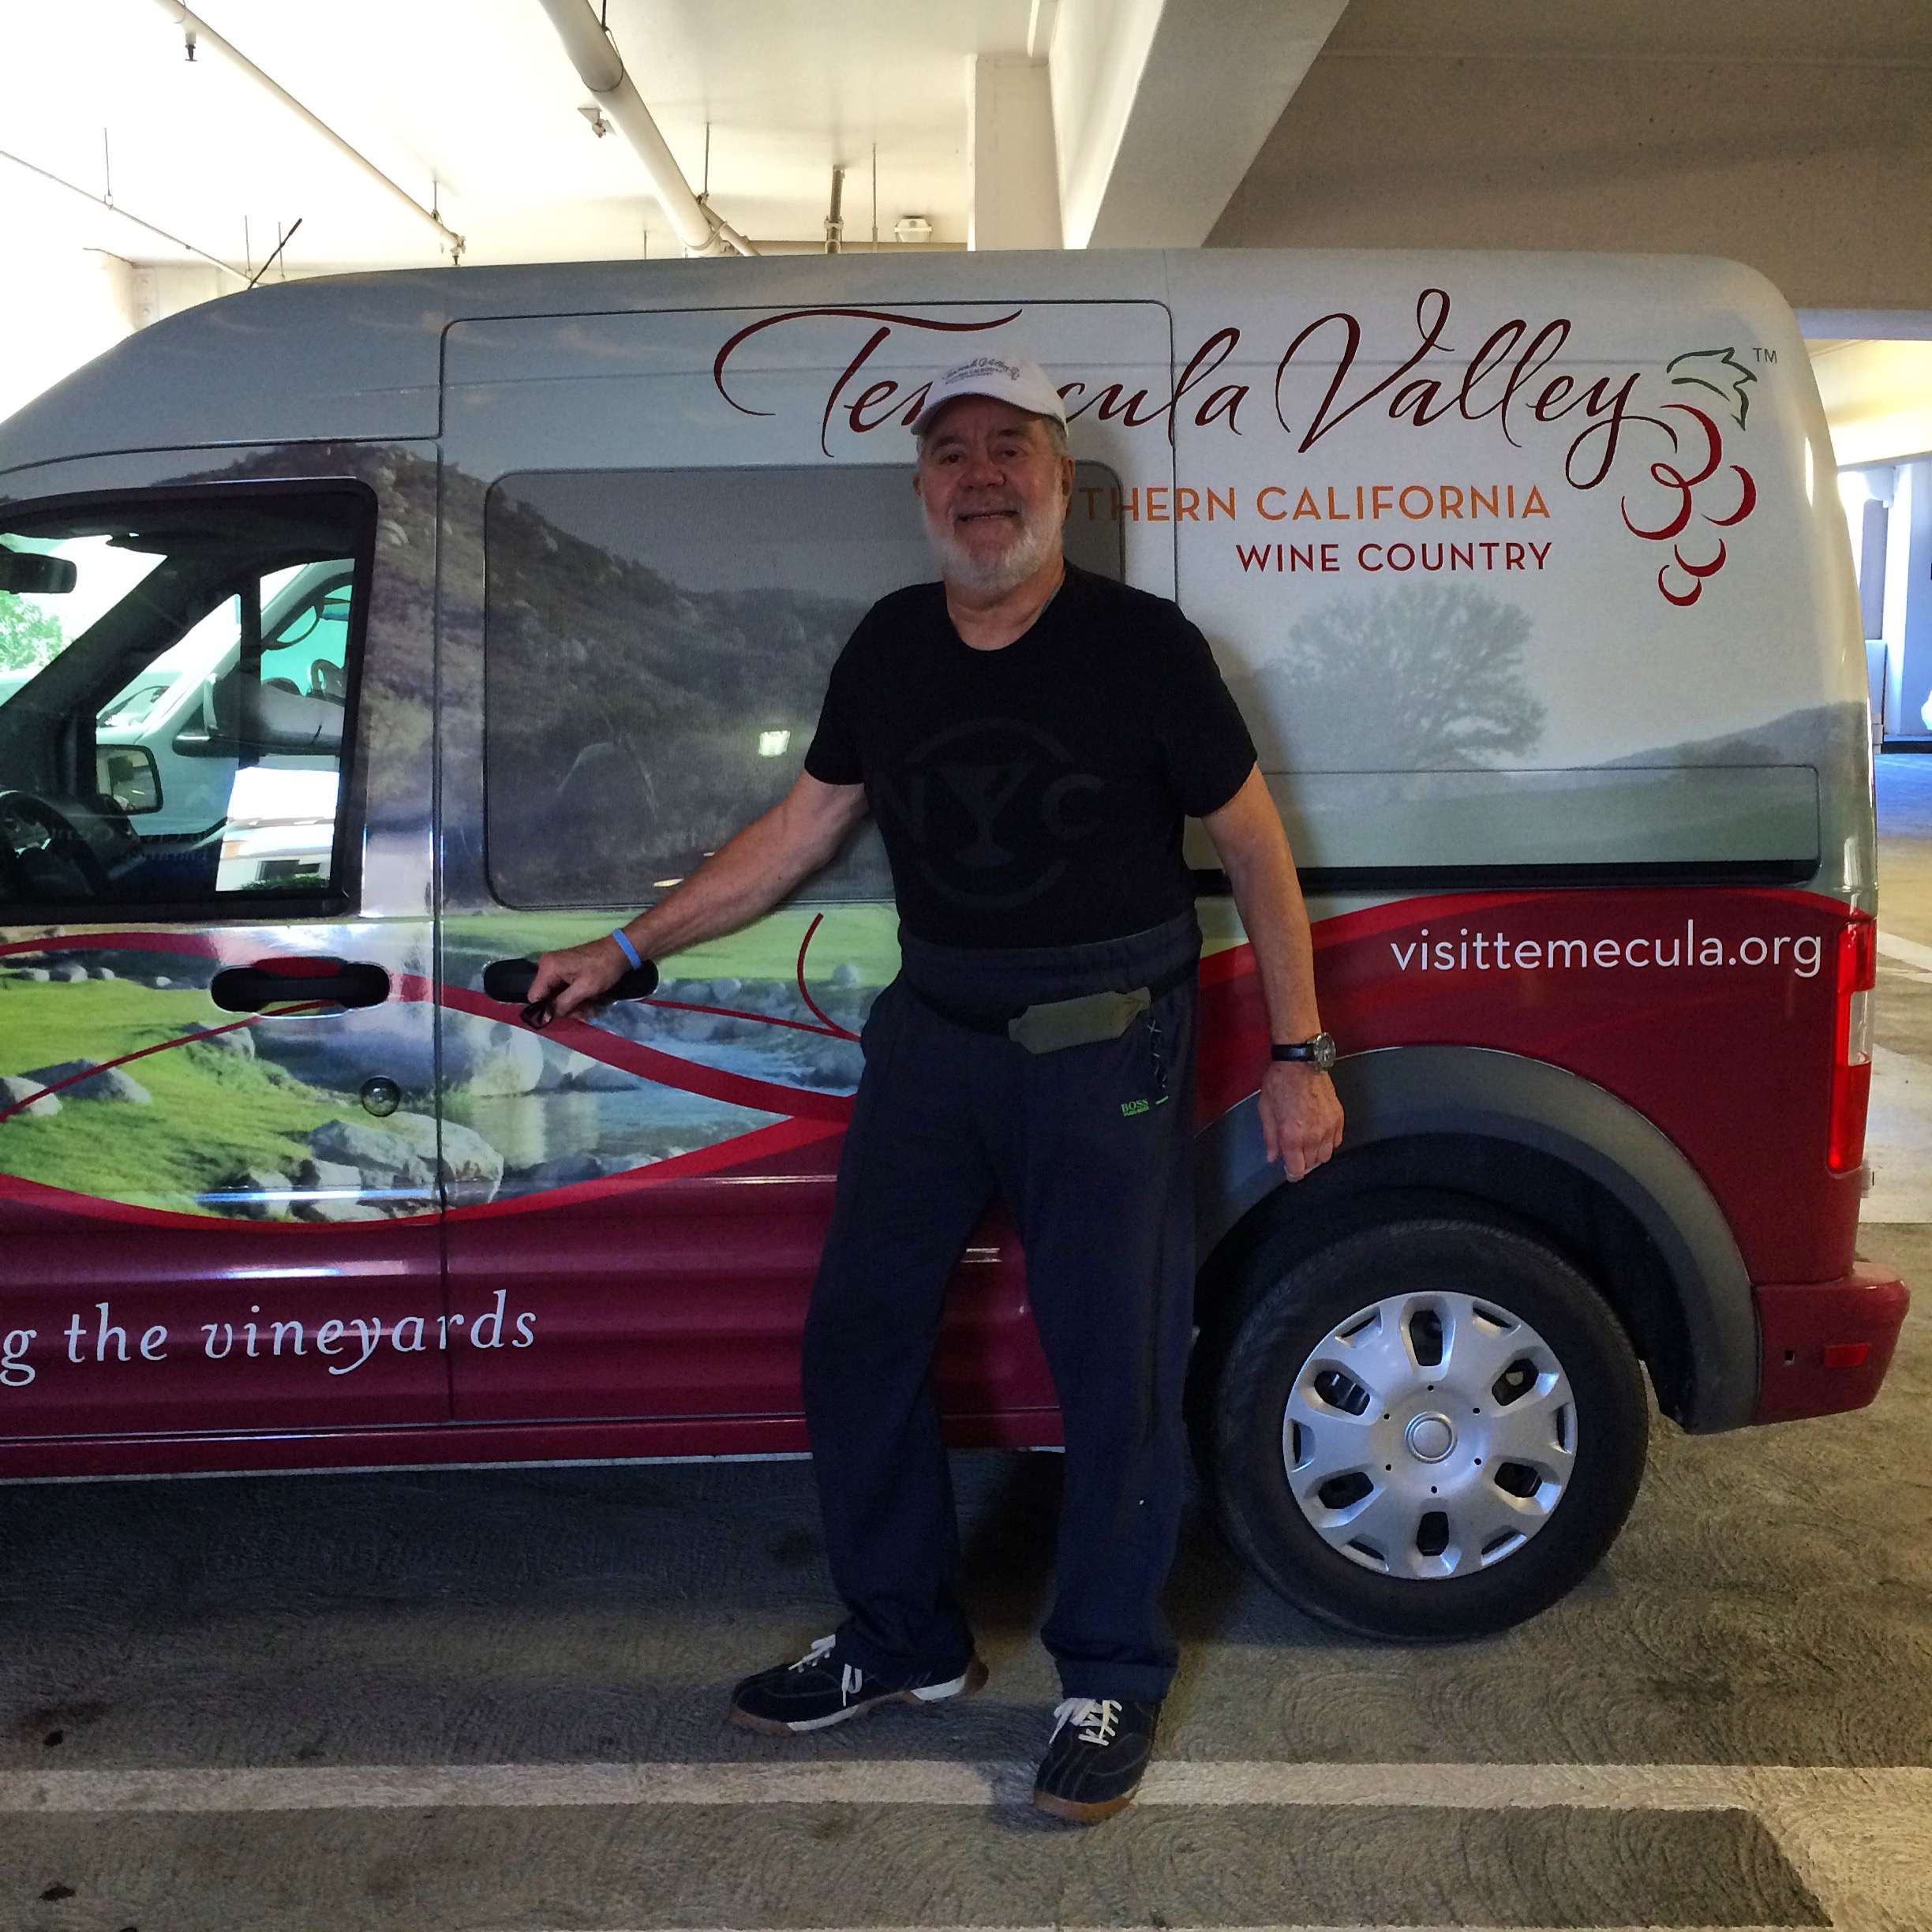 Ron in front of the Temecula Wintner Truck